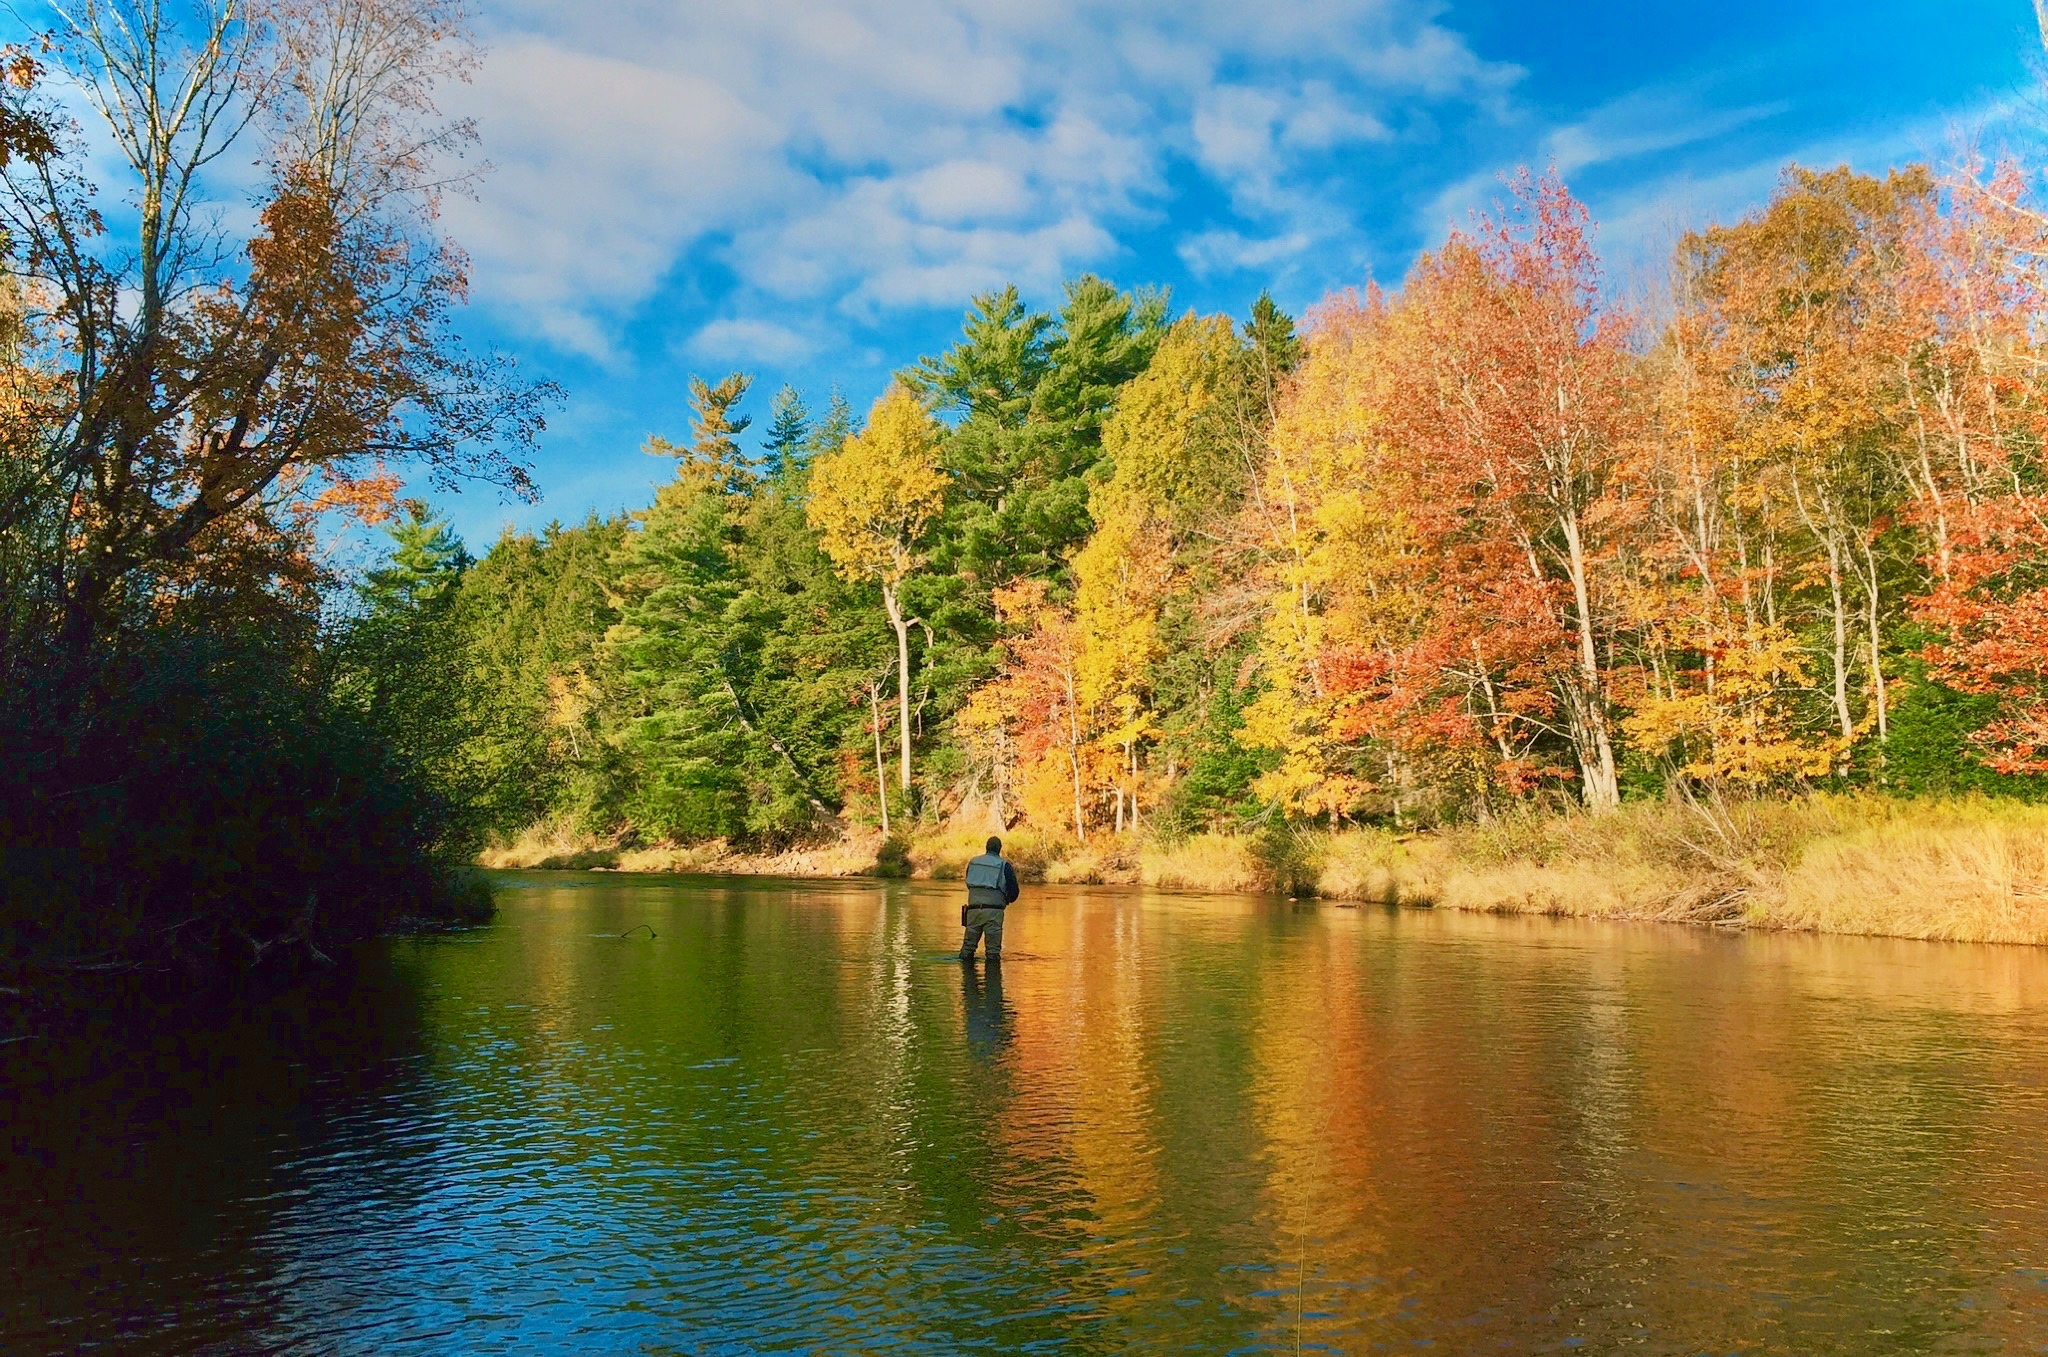 You're missing out if you aren't exploring Nova Scotia in the fall. Aside from legendary fall colours, you can find apple picking, all kinds of fall festivals, and your choice of cider, whiskey, or vodka tasting.